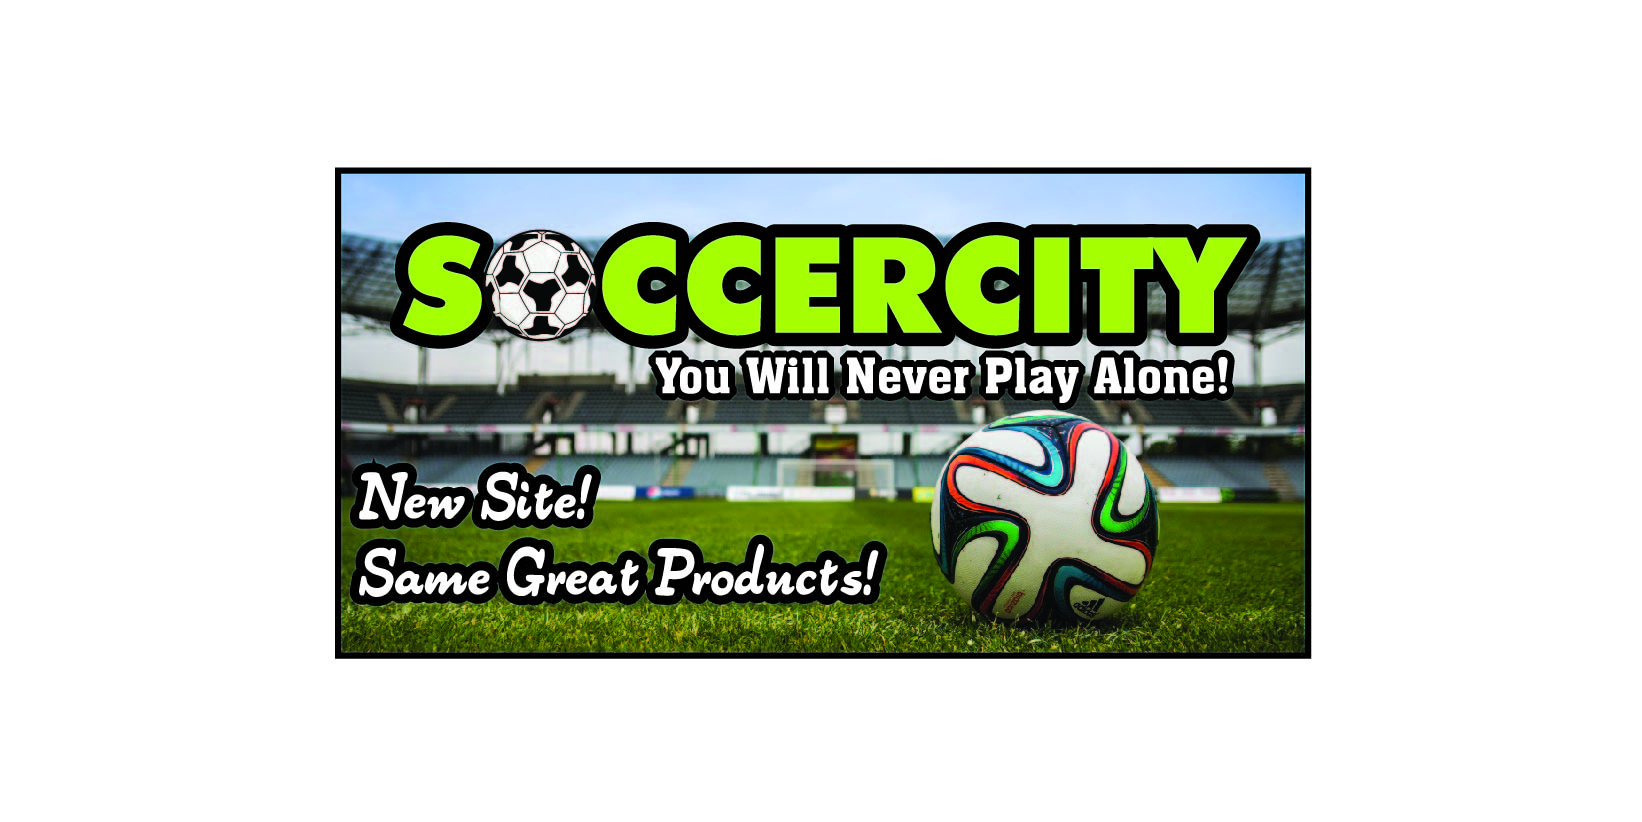 d9cf8fb24 Soccer Apparel, Equipment, Custom Uniforms | Soccer City